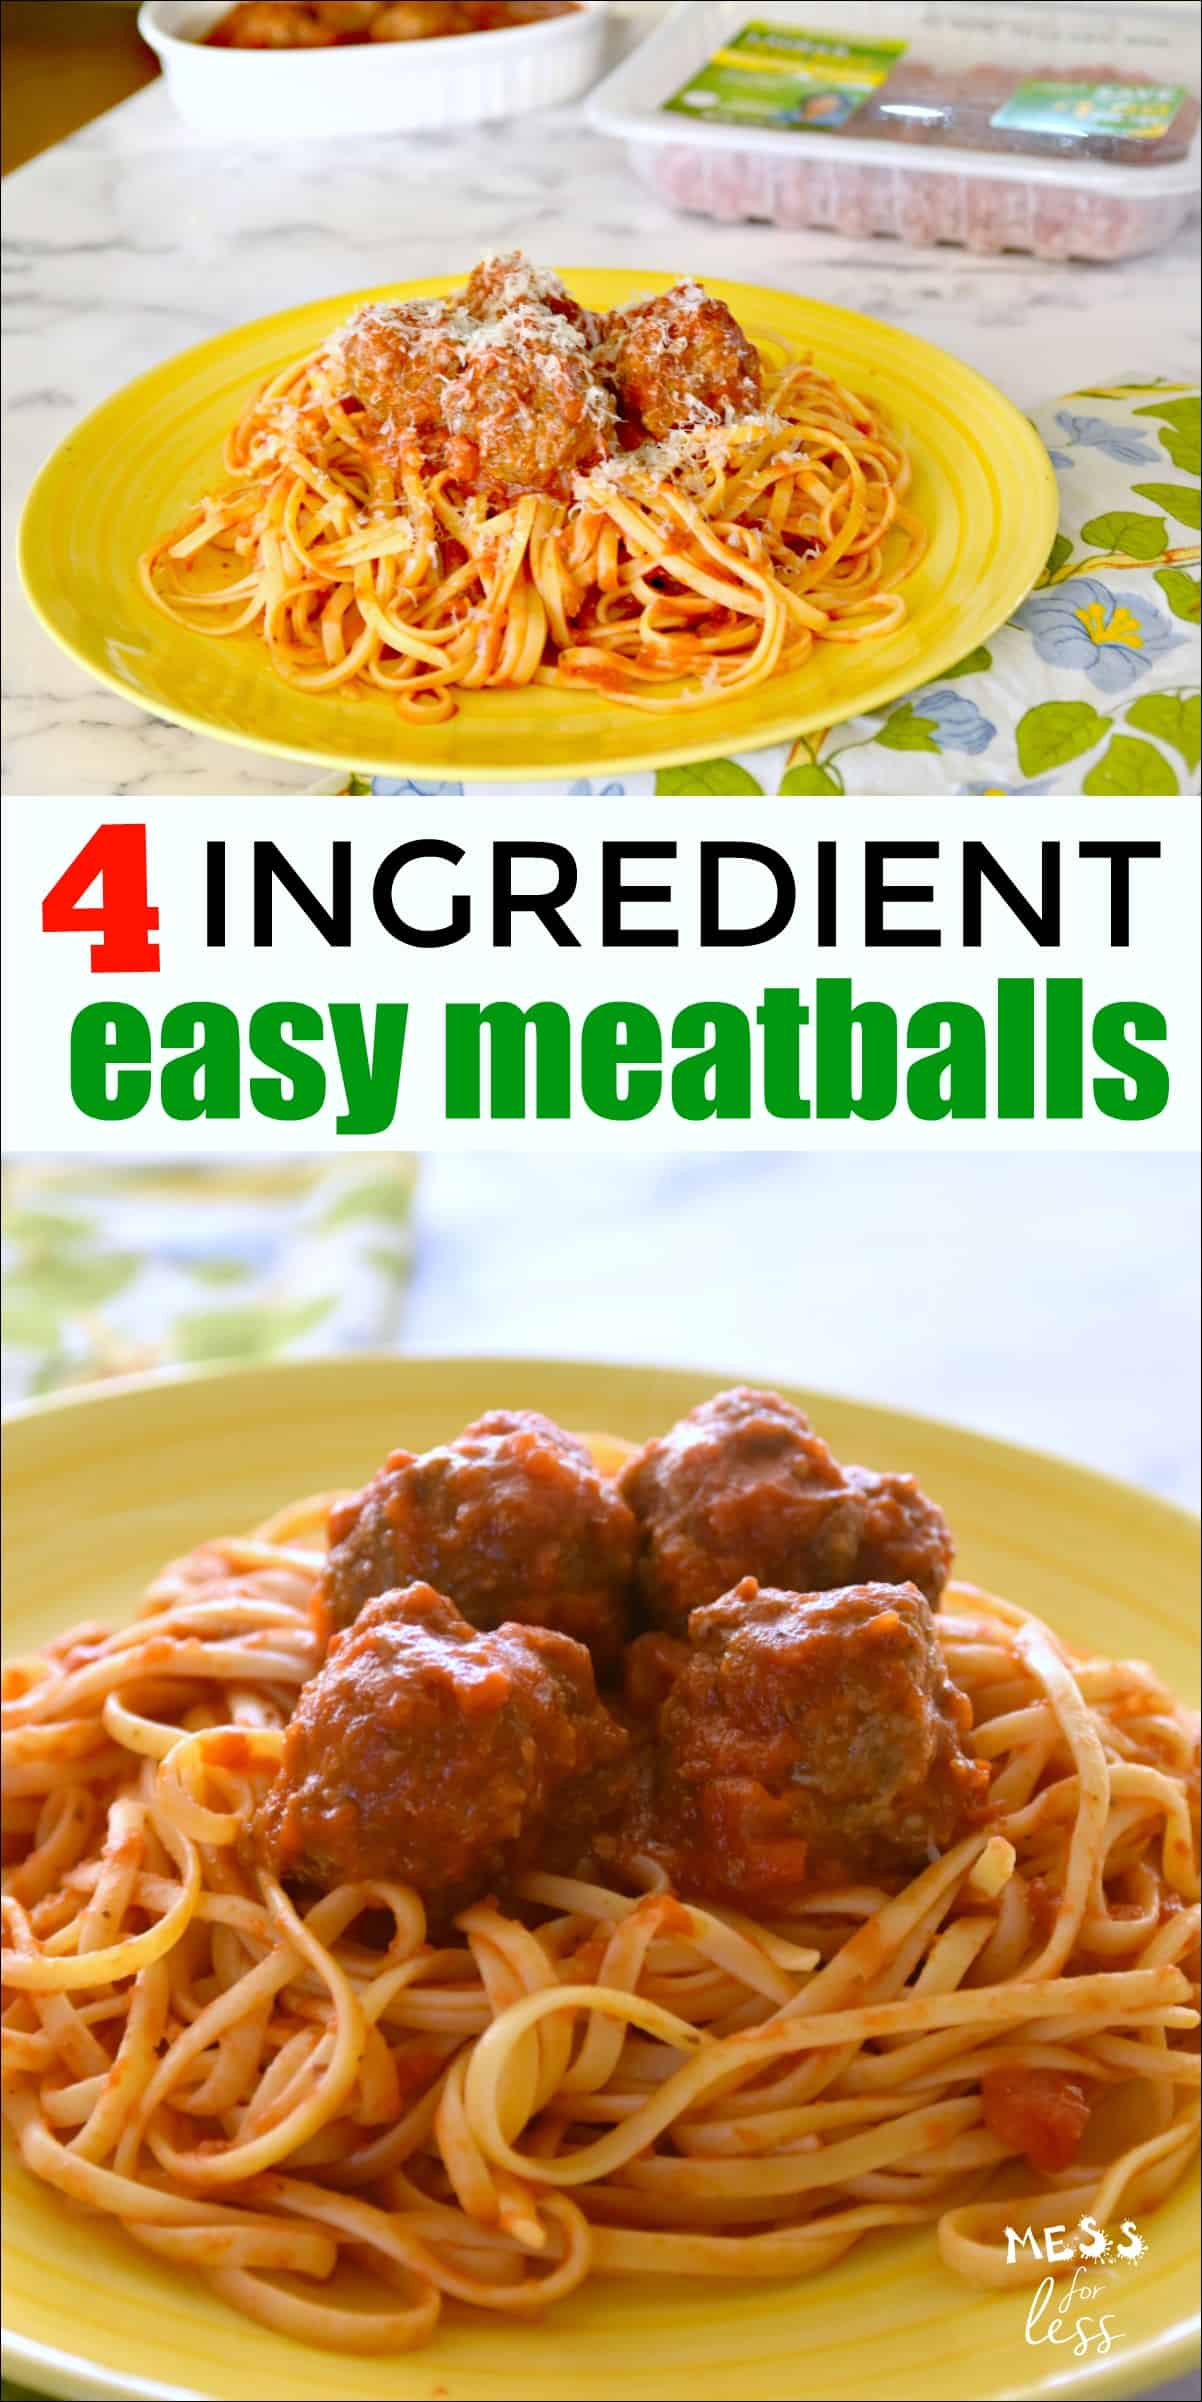 #ad I created these 4 Ingredient Easy Meatballs to help you spend less time cooking, and more time with your family while savoring a great meal. @LaurasLean #LaurasLean #NVREVR #noantibiotics #noaddedhormones #allnatural